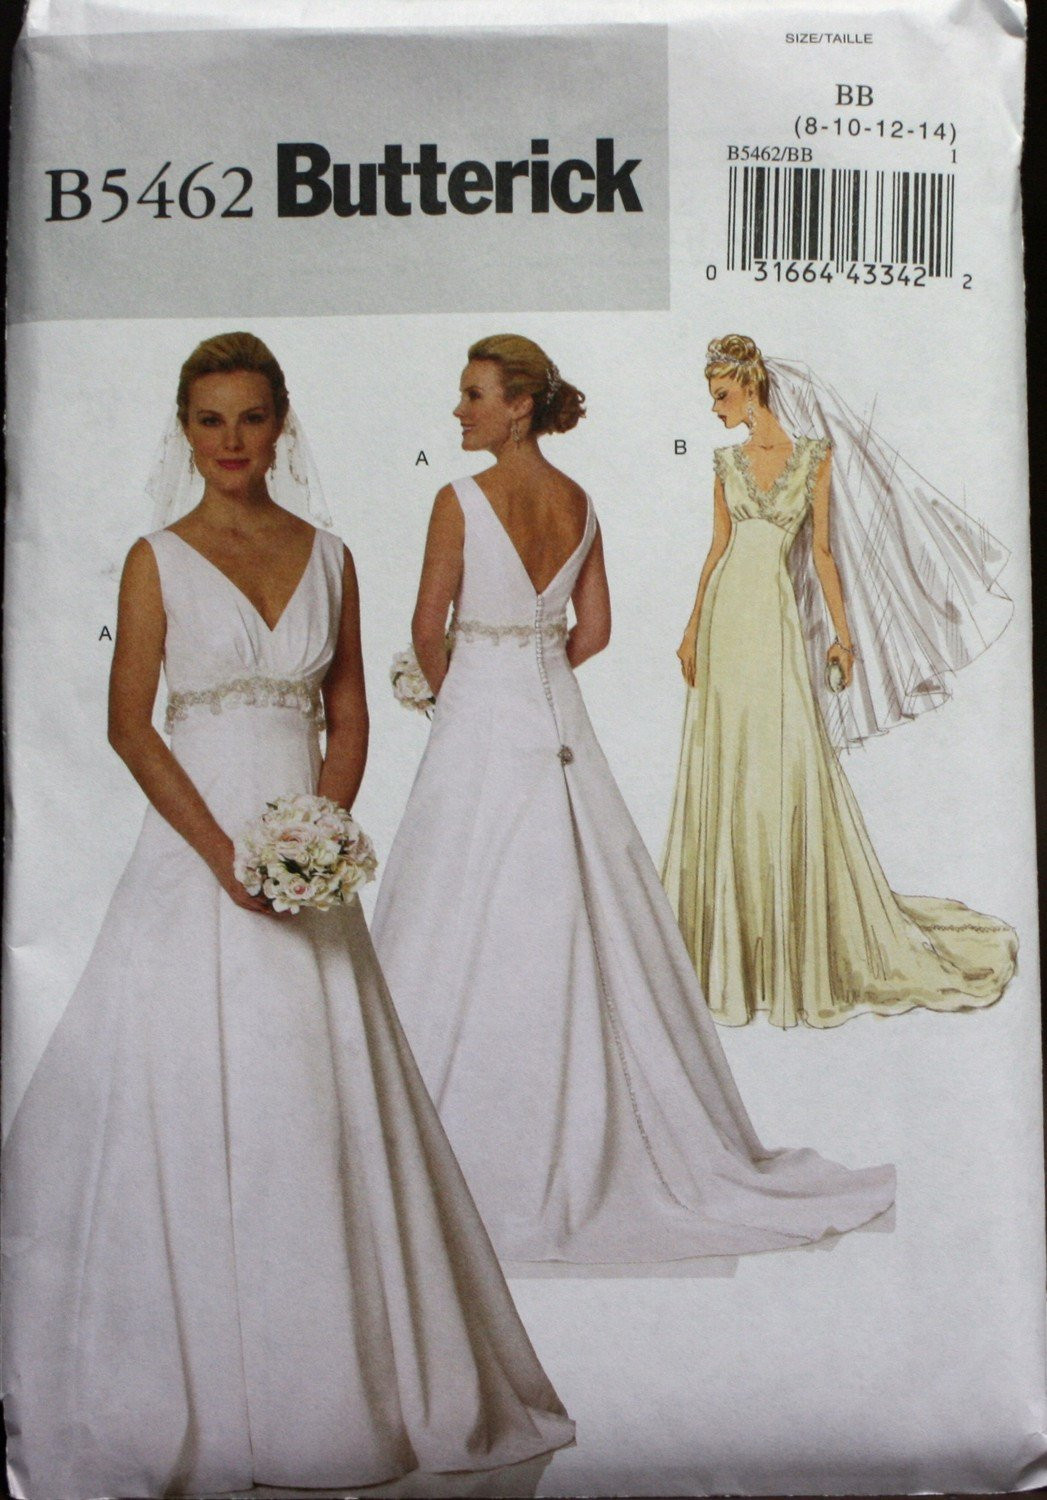 Wedding Dress Patterns New B5462 butterick Wedding Dress Sewing Pattern New Uncut Size Of Incredible 44 Images Wedding Dress Patterns